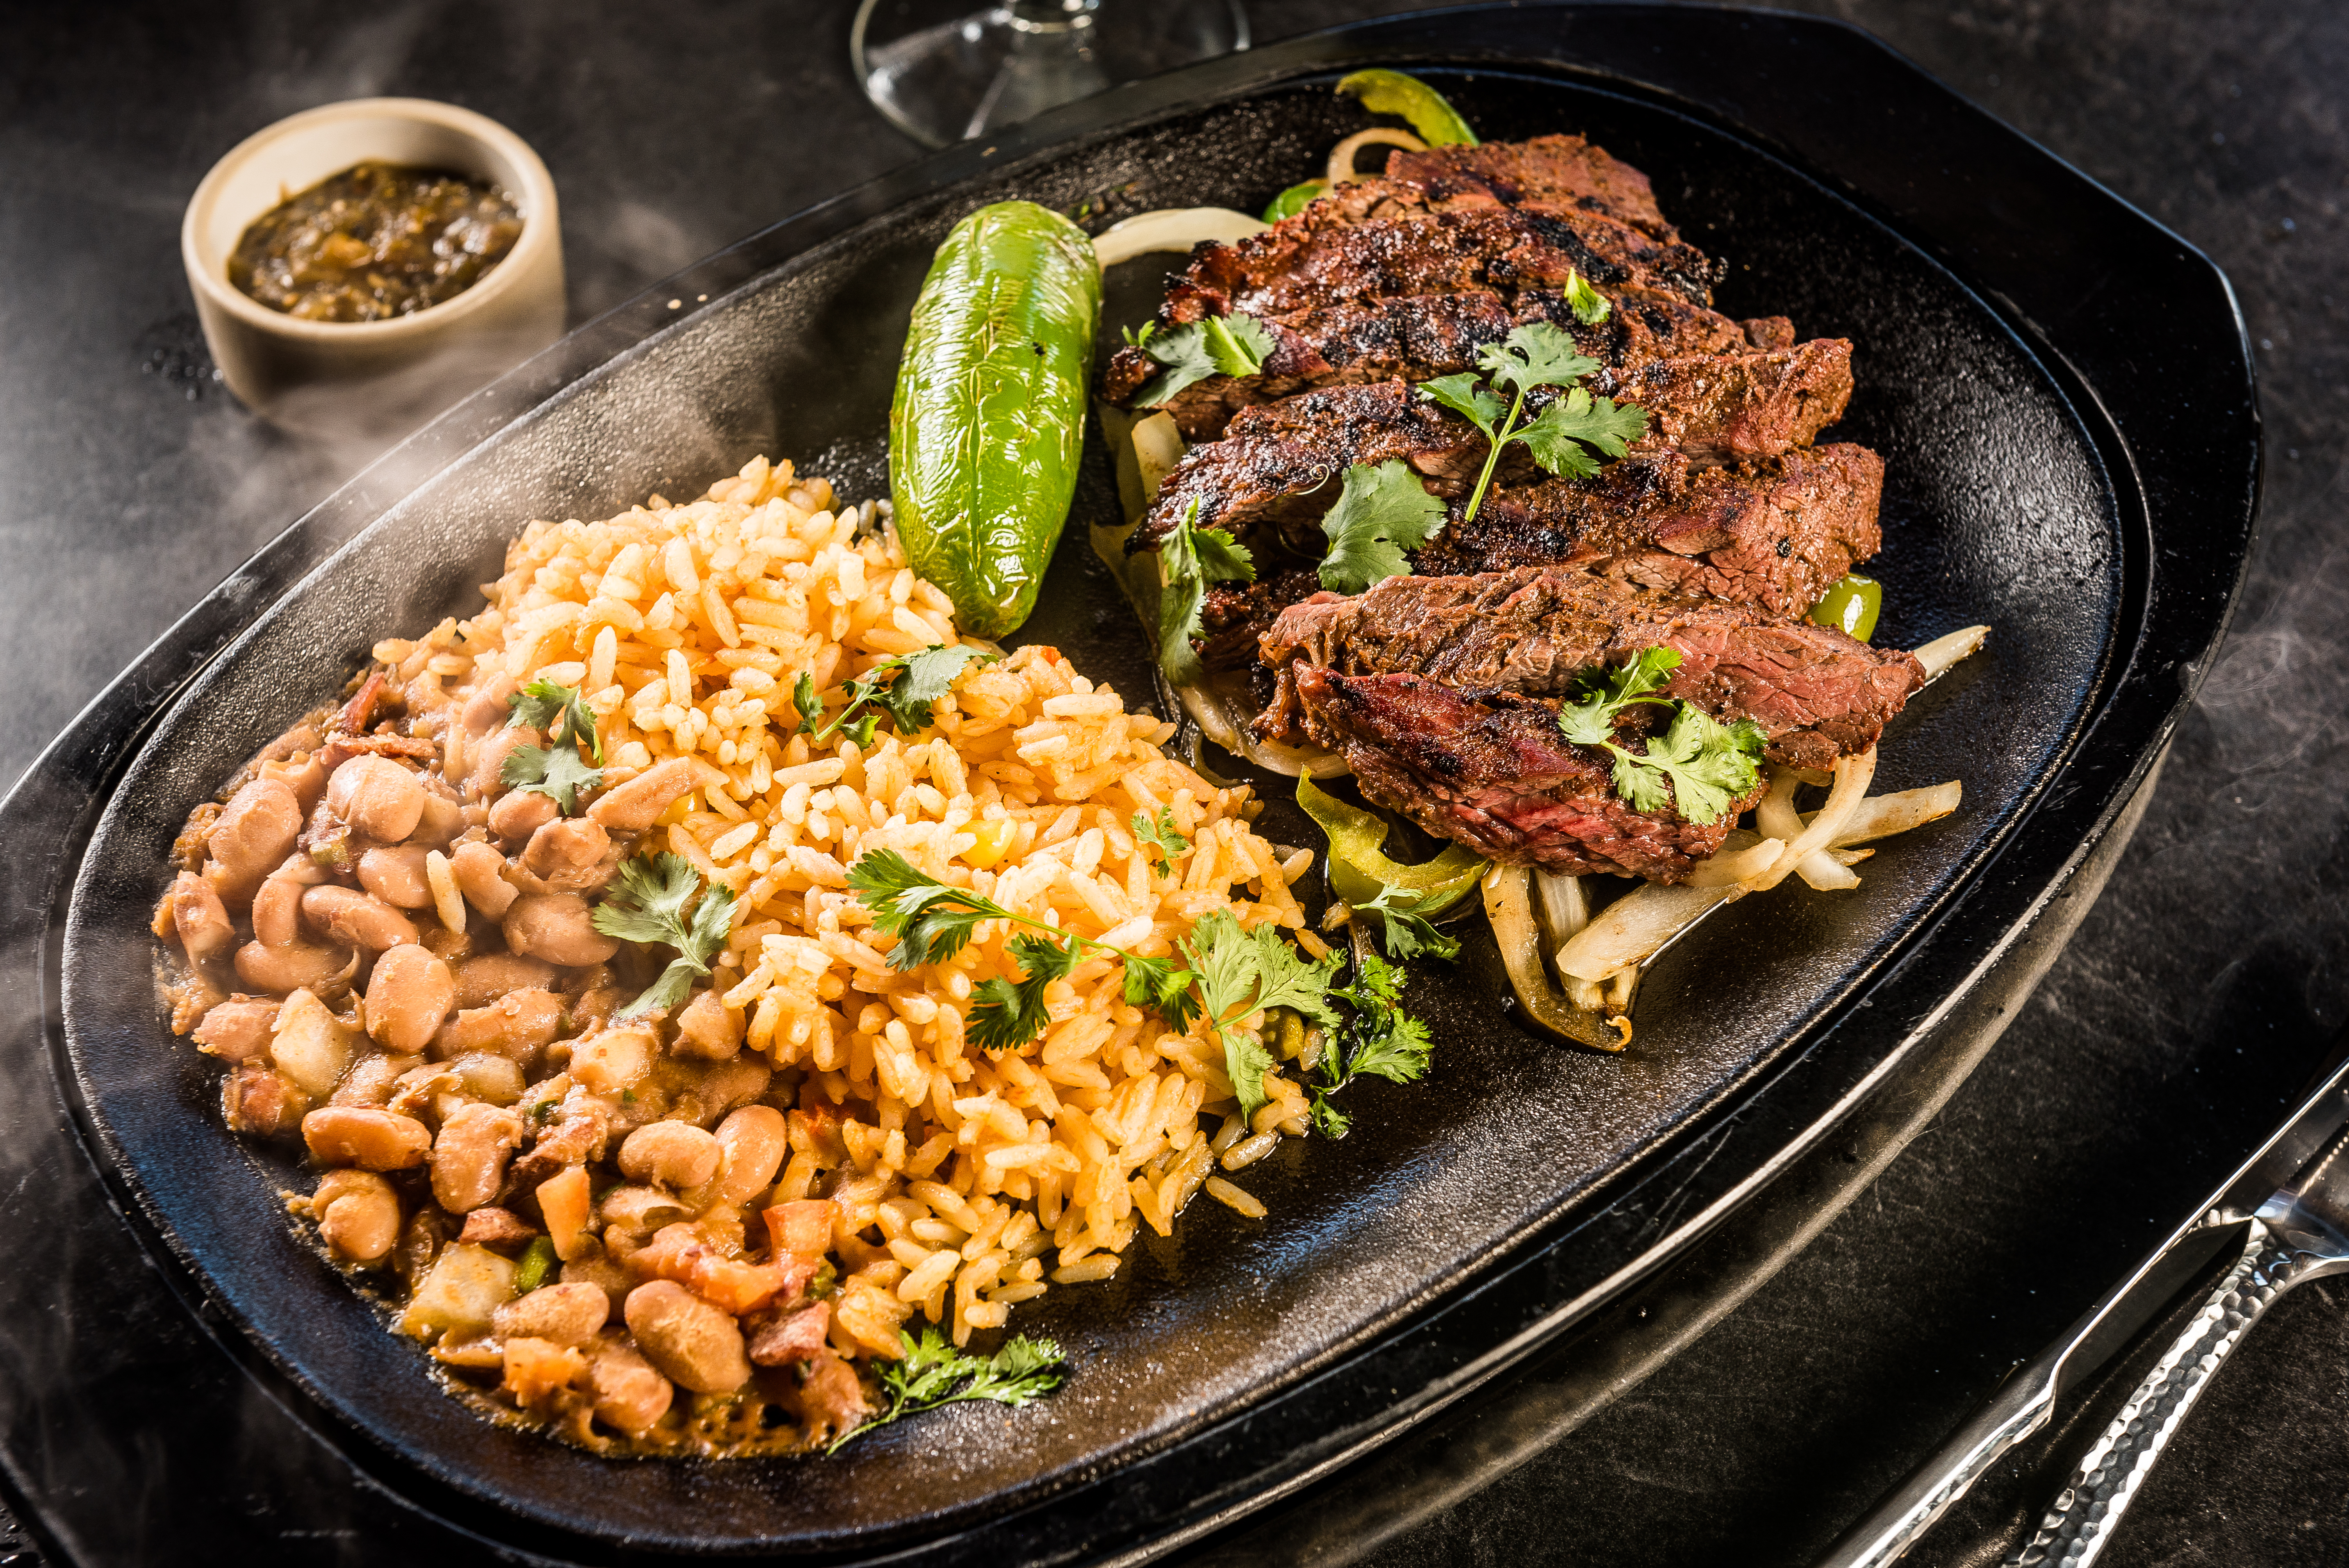 Local Tex-Mex chain Guapo's has brought its crowd-pleasing margaritas and fajitas to Georgetown. (Image: Rey Lopez)